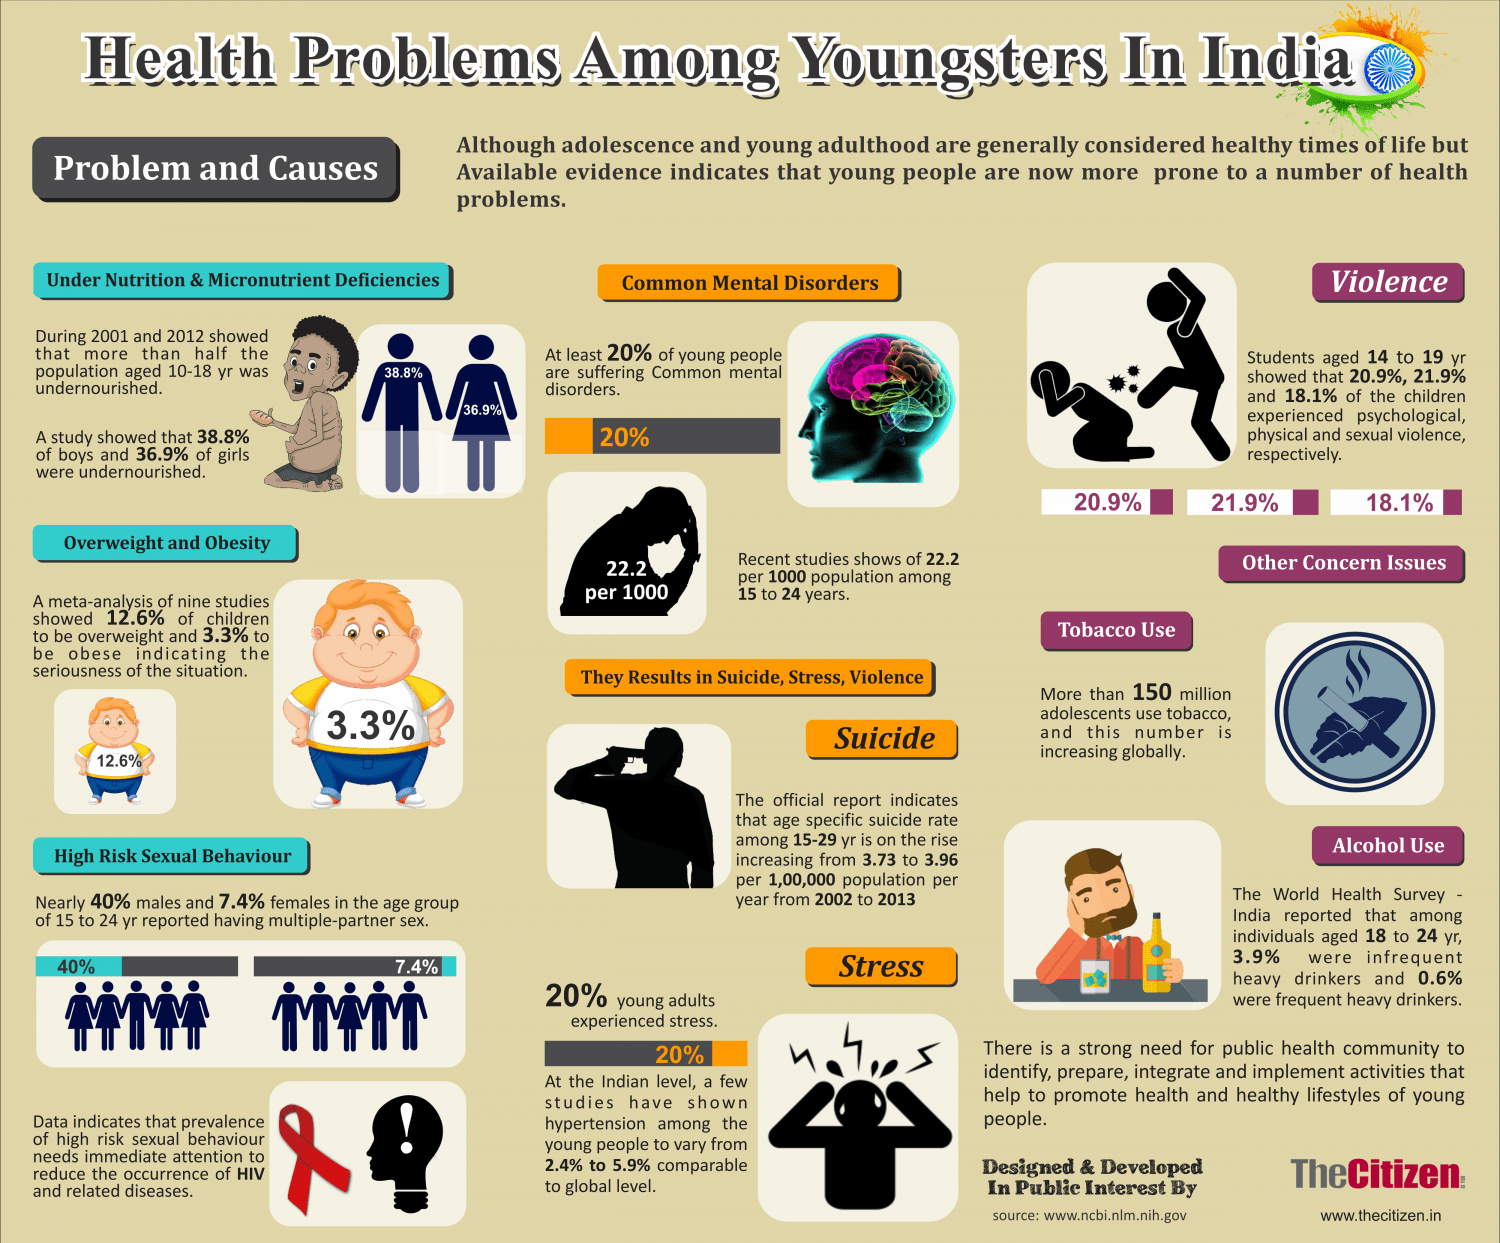 Health Problems Among Youngsters In India